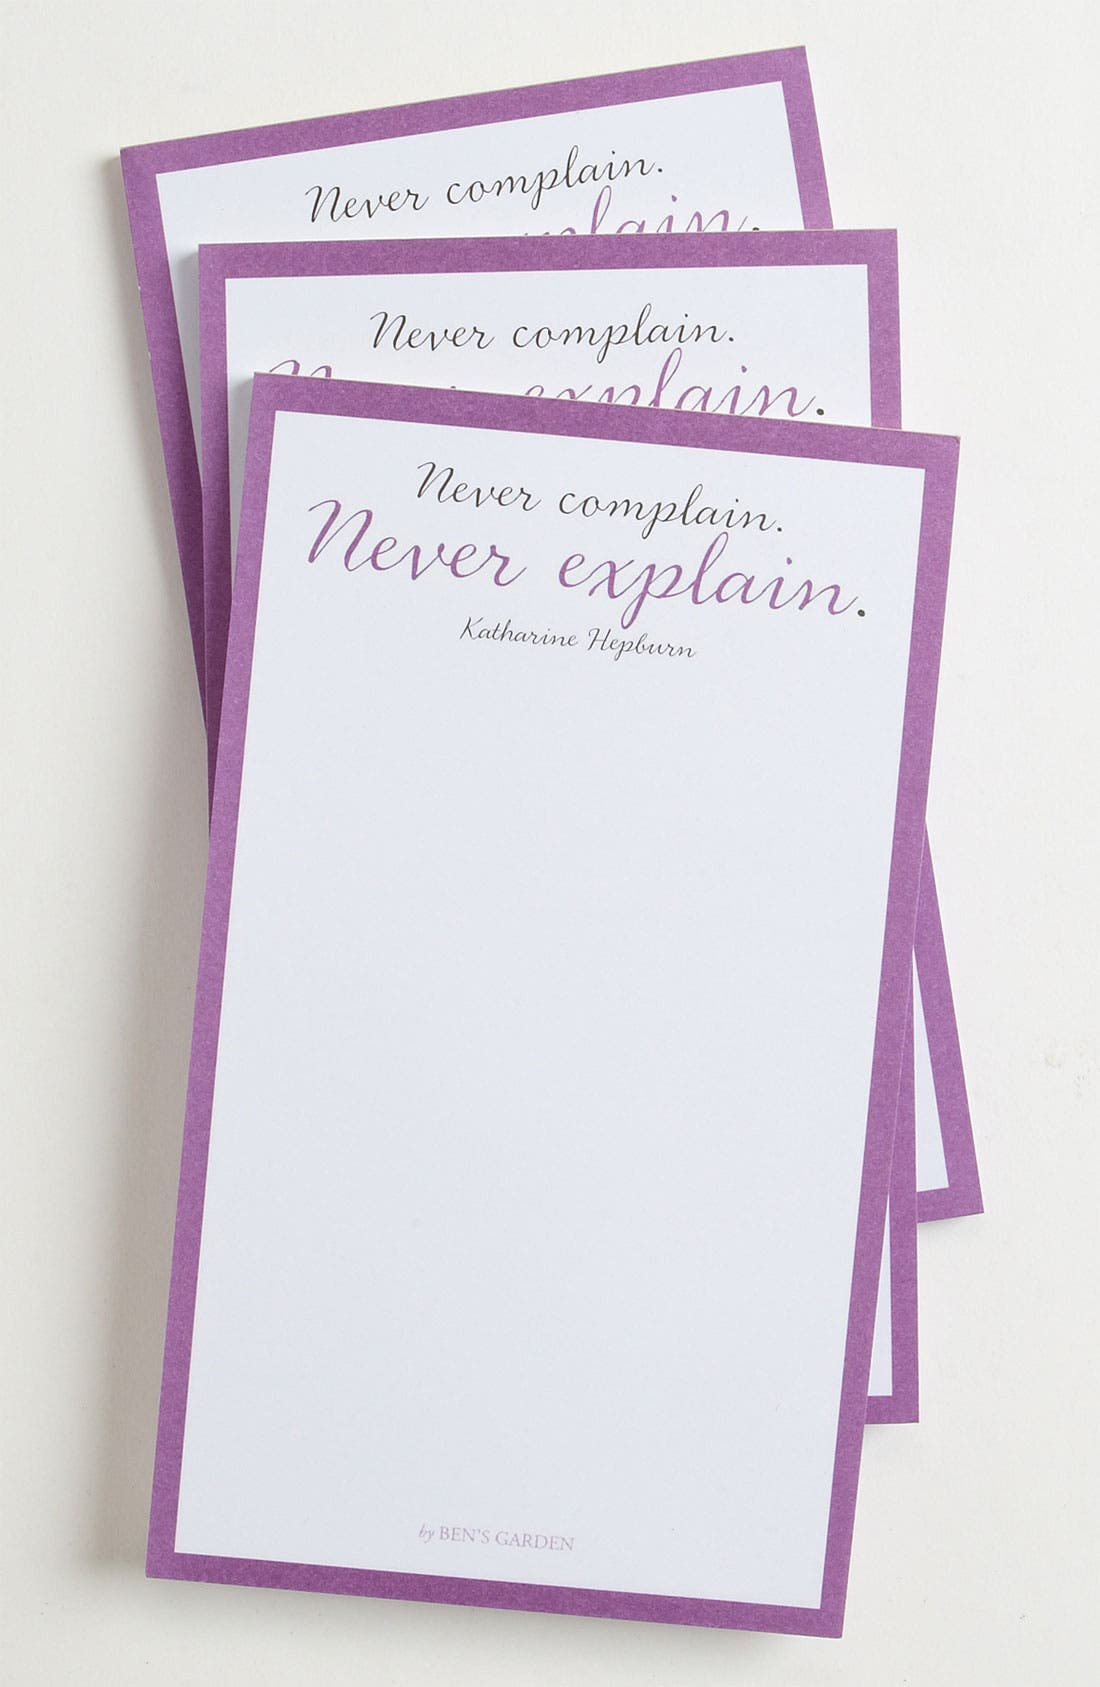 Alternate Image 1 Selected - Ben's Garden 'Never Complain, Never Explain' Notepads (3-Pack)